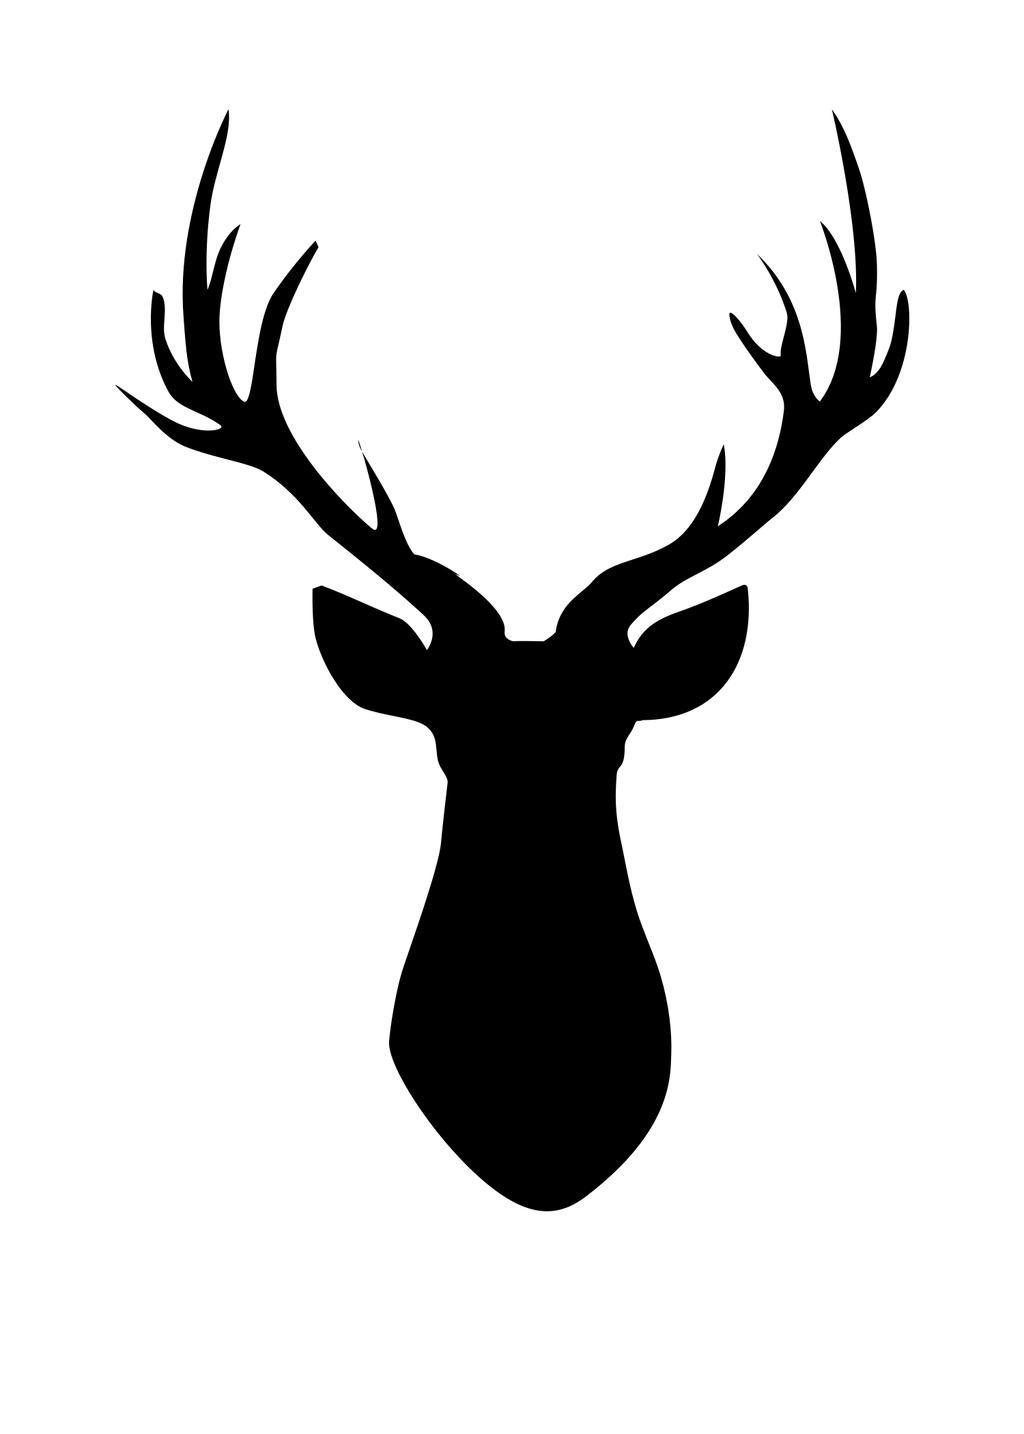 image about Printable Deer Head called Deer Intellect Pallet Graphics Deer intellect silhouette, Deer